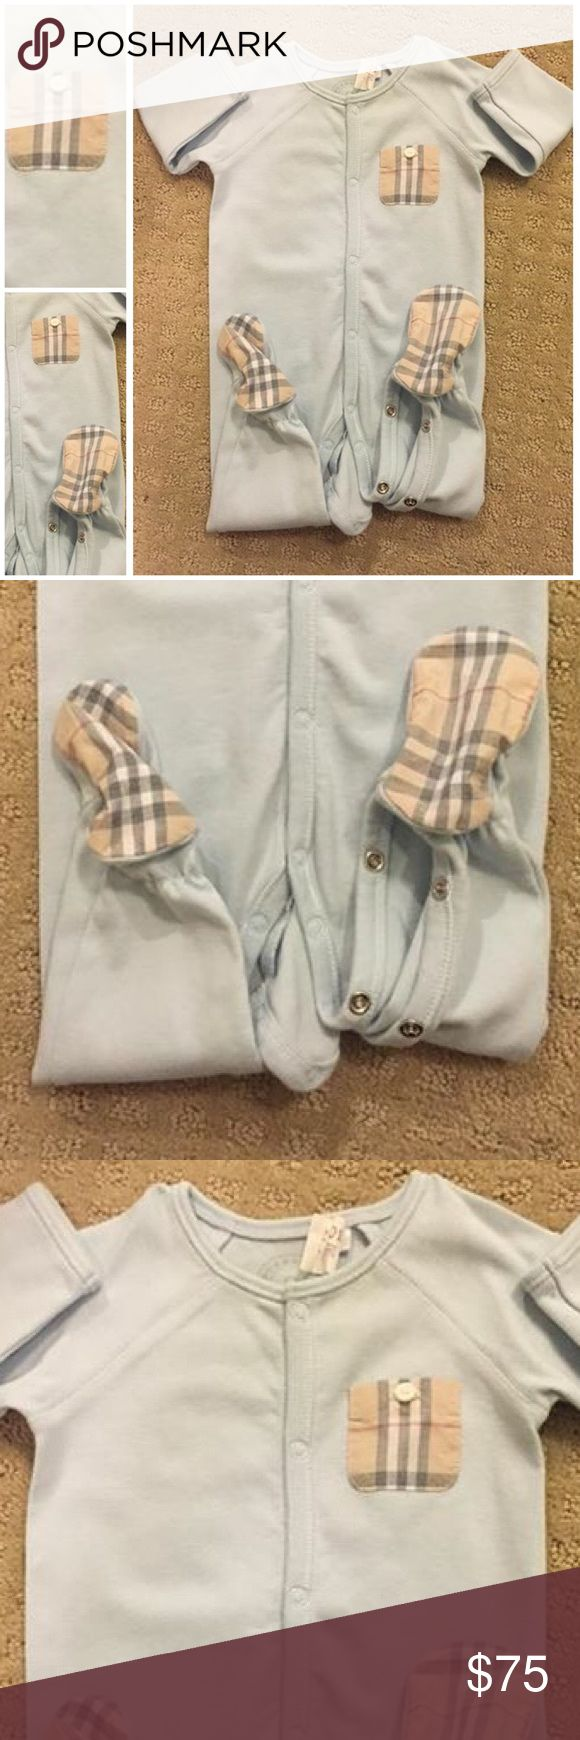 👶🏻 Burberry Footie 👶🏻 This Burberry footie was worn once for only a few hours. Very light blue in color. It was never spit up on. No potty accidents. I never washed it. Only dry cleaned once after it was worn. It was $125 brand new at Neiman Marcus North Park Dallas, Tx. Pet free, Smoke free. Open to reasonable offers and/or bundle discounts. ❤️X for your VIP baby. 👶🏼 Burberry One Pieces Footies